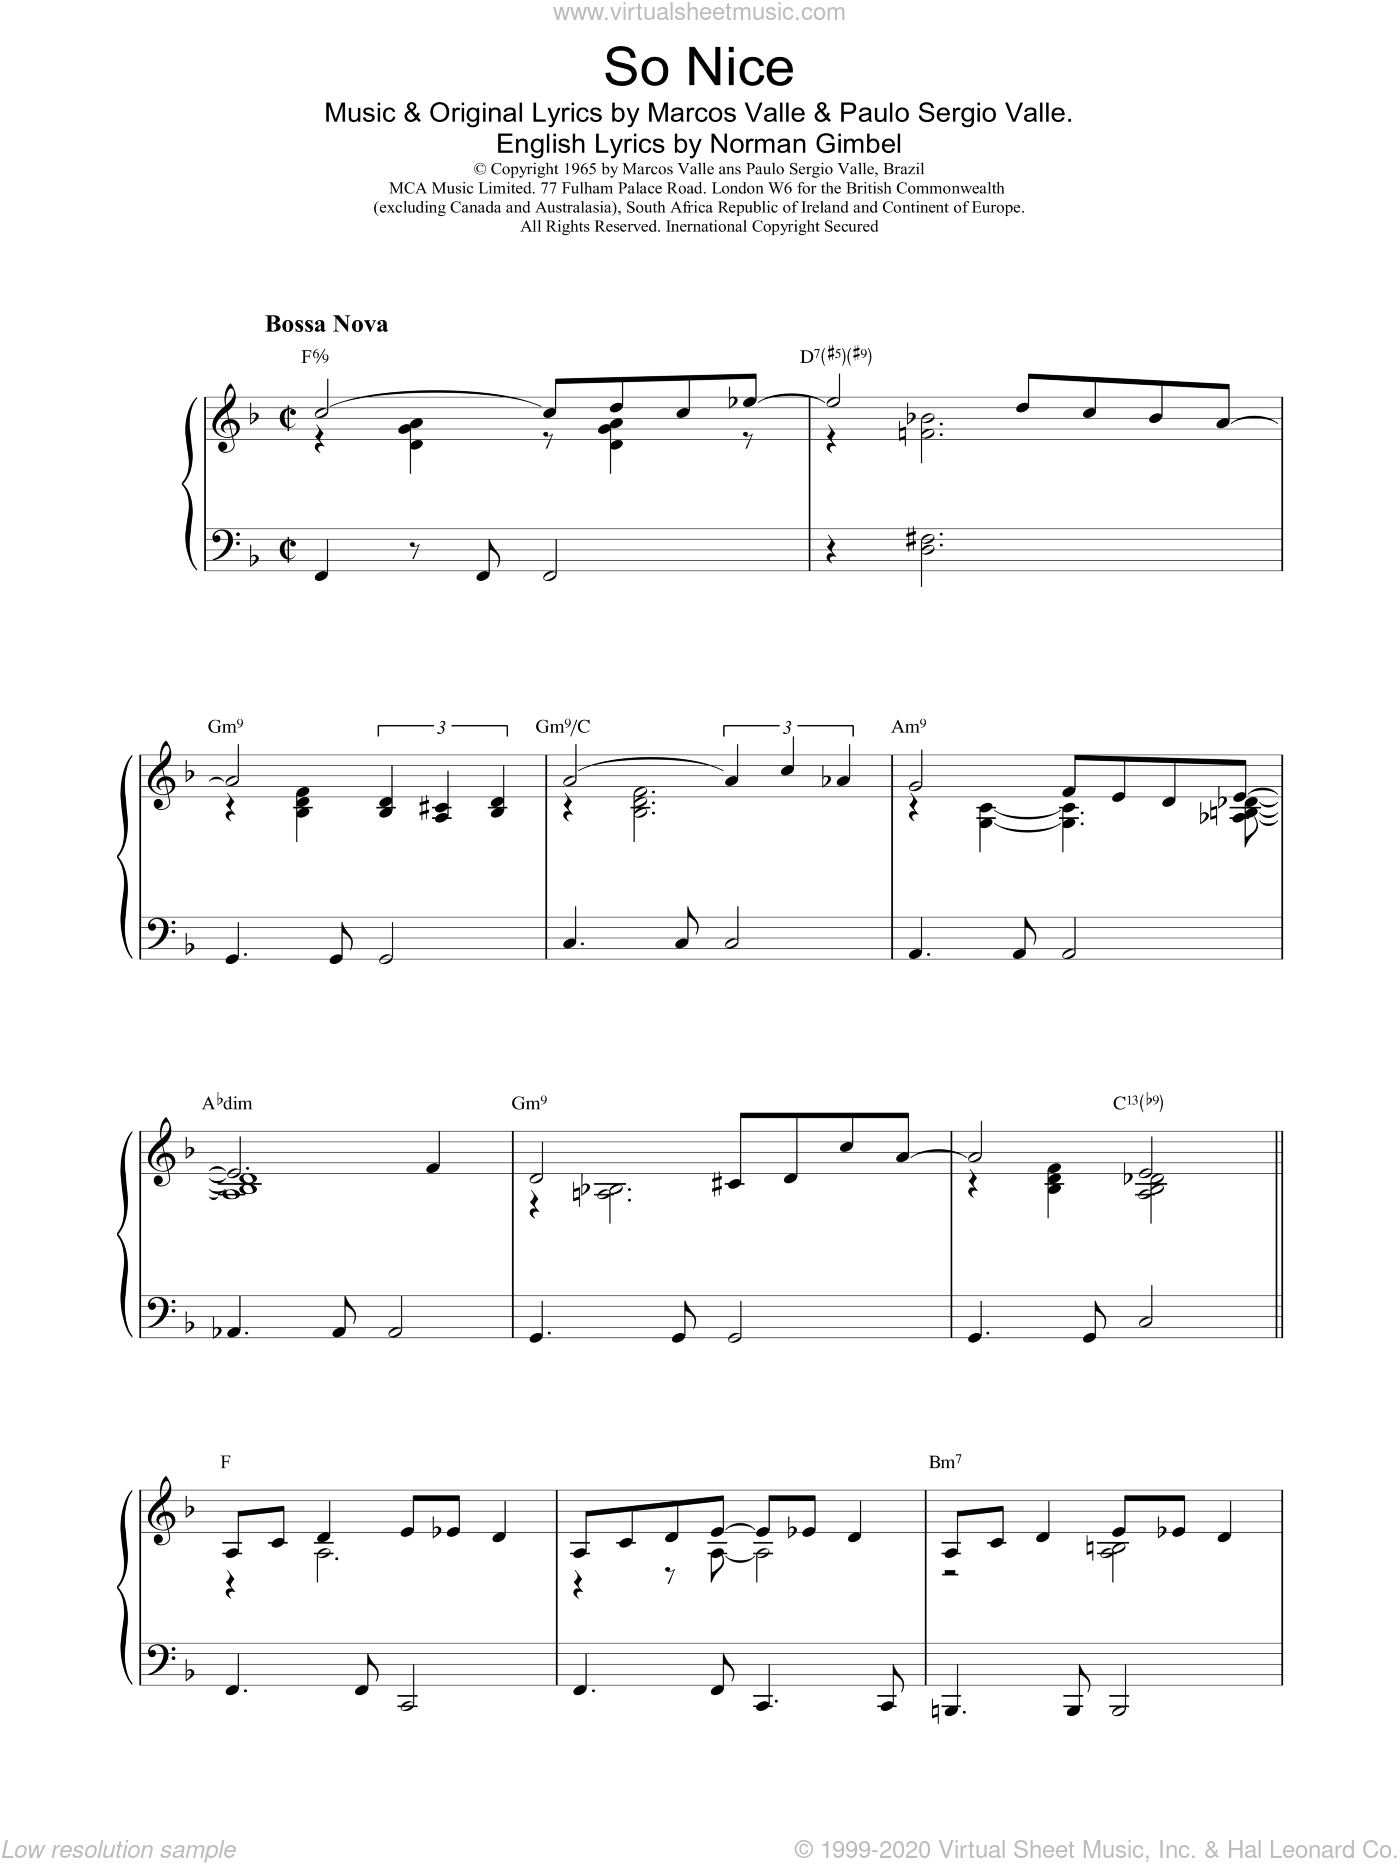 So Nice sheet music for piano solo by Valle